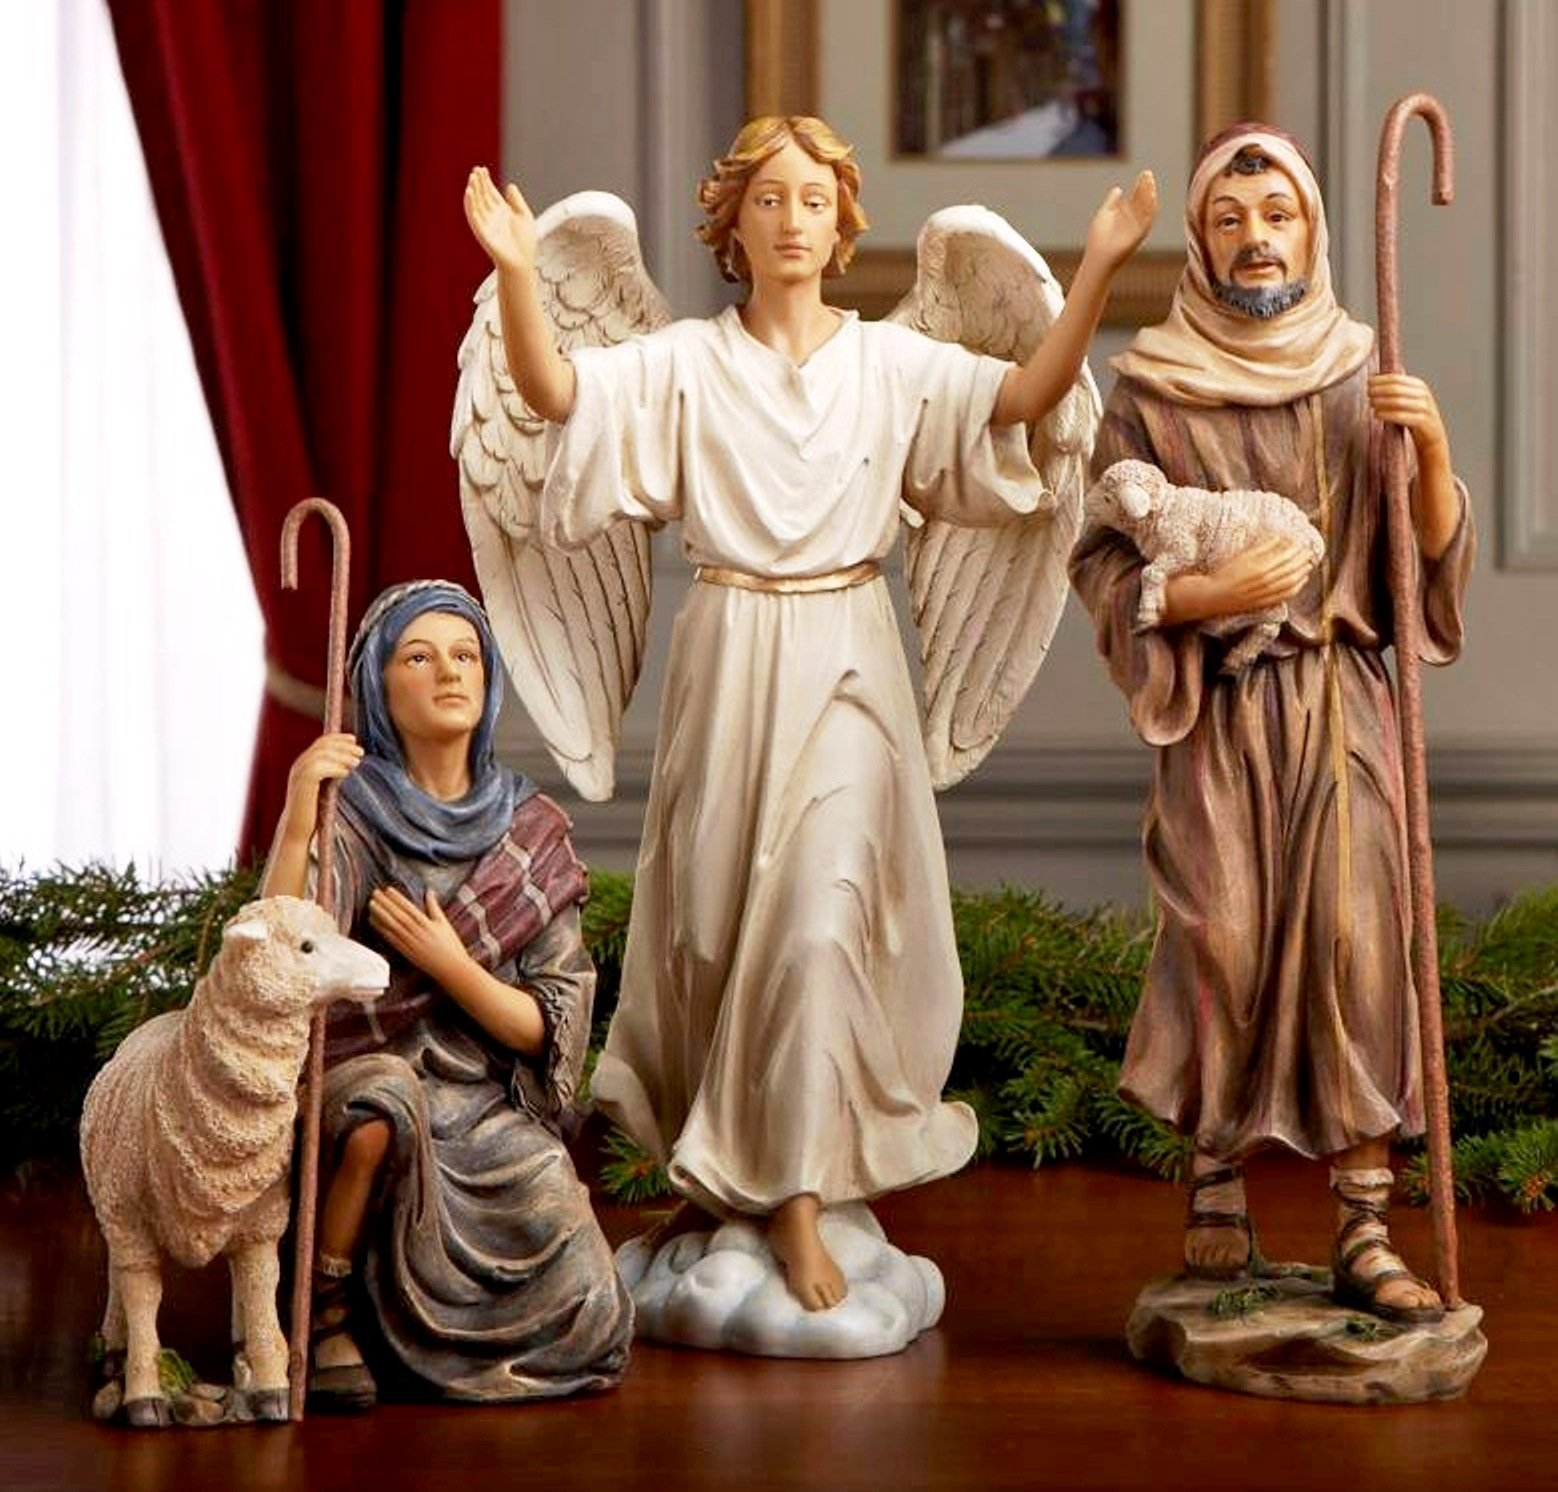 Christmas Nativity Set - Full 10 inch Real Life Nativity Set by Three Kings Gifts (Image #3)